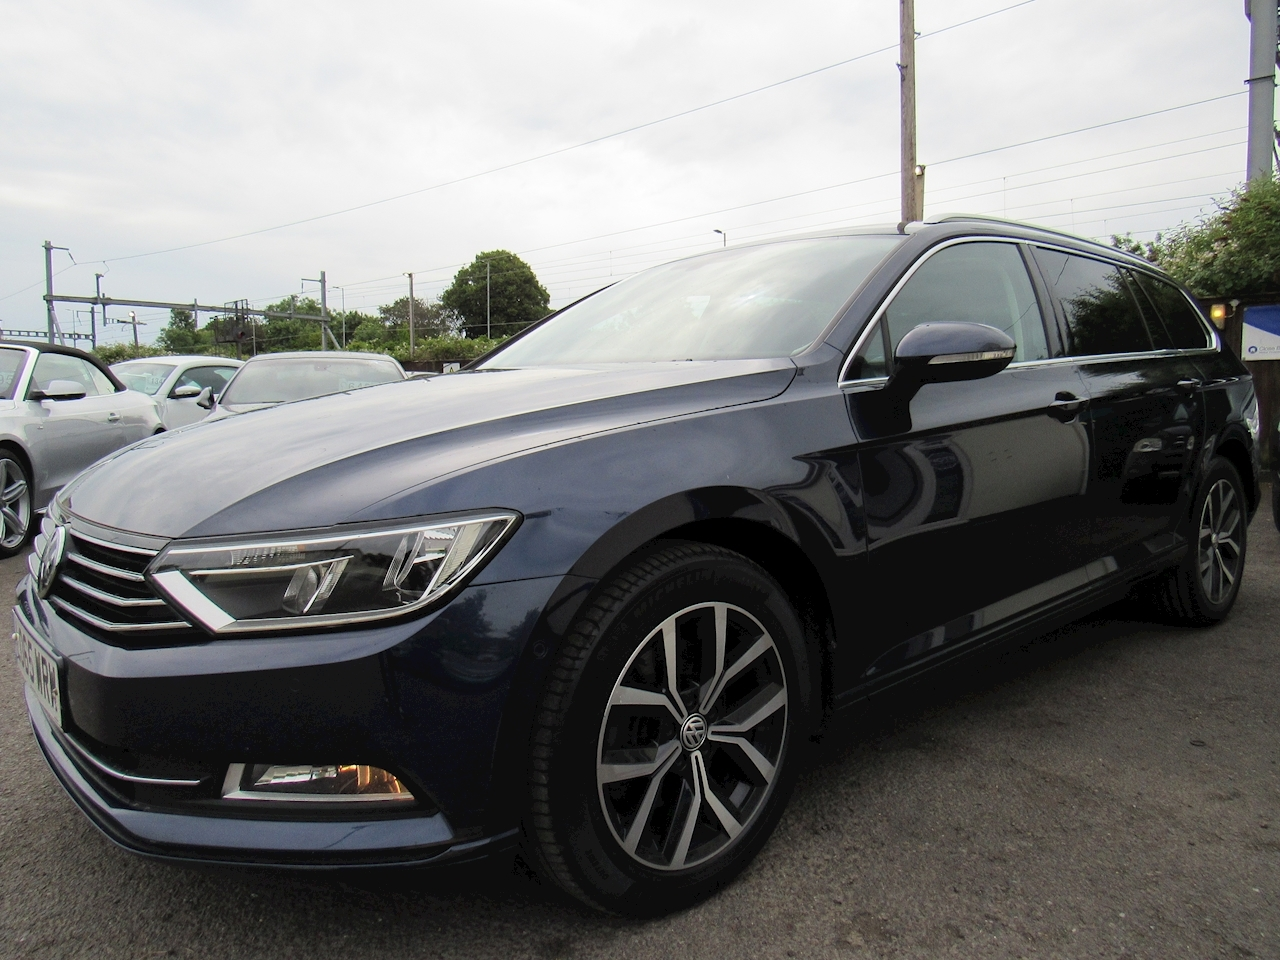 Volkswagen Passat Se Business Tdi Bluemotion Tech Dsg Estate 2.0 Semi Auto Diesel